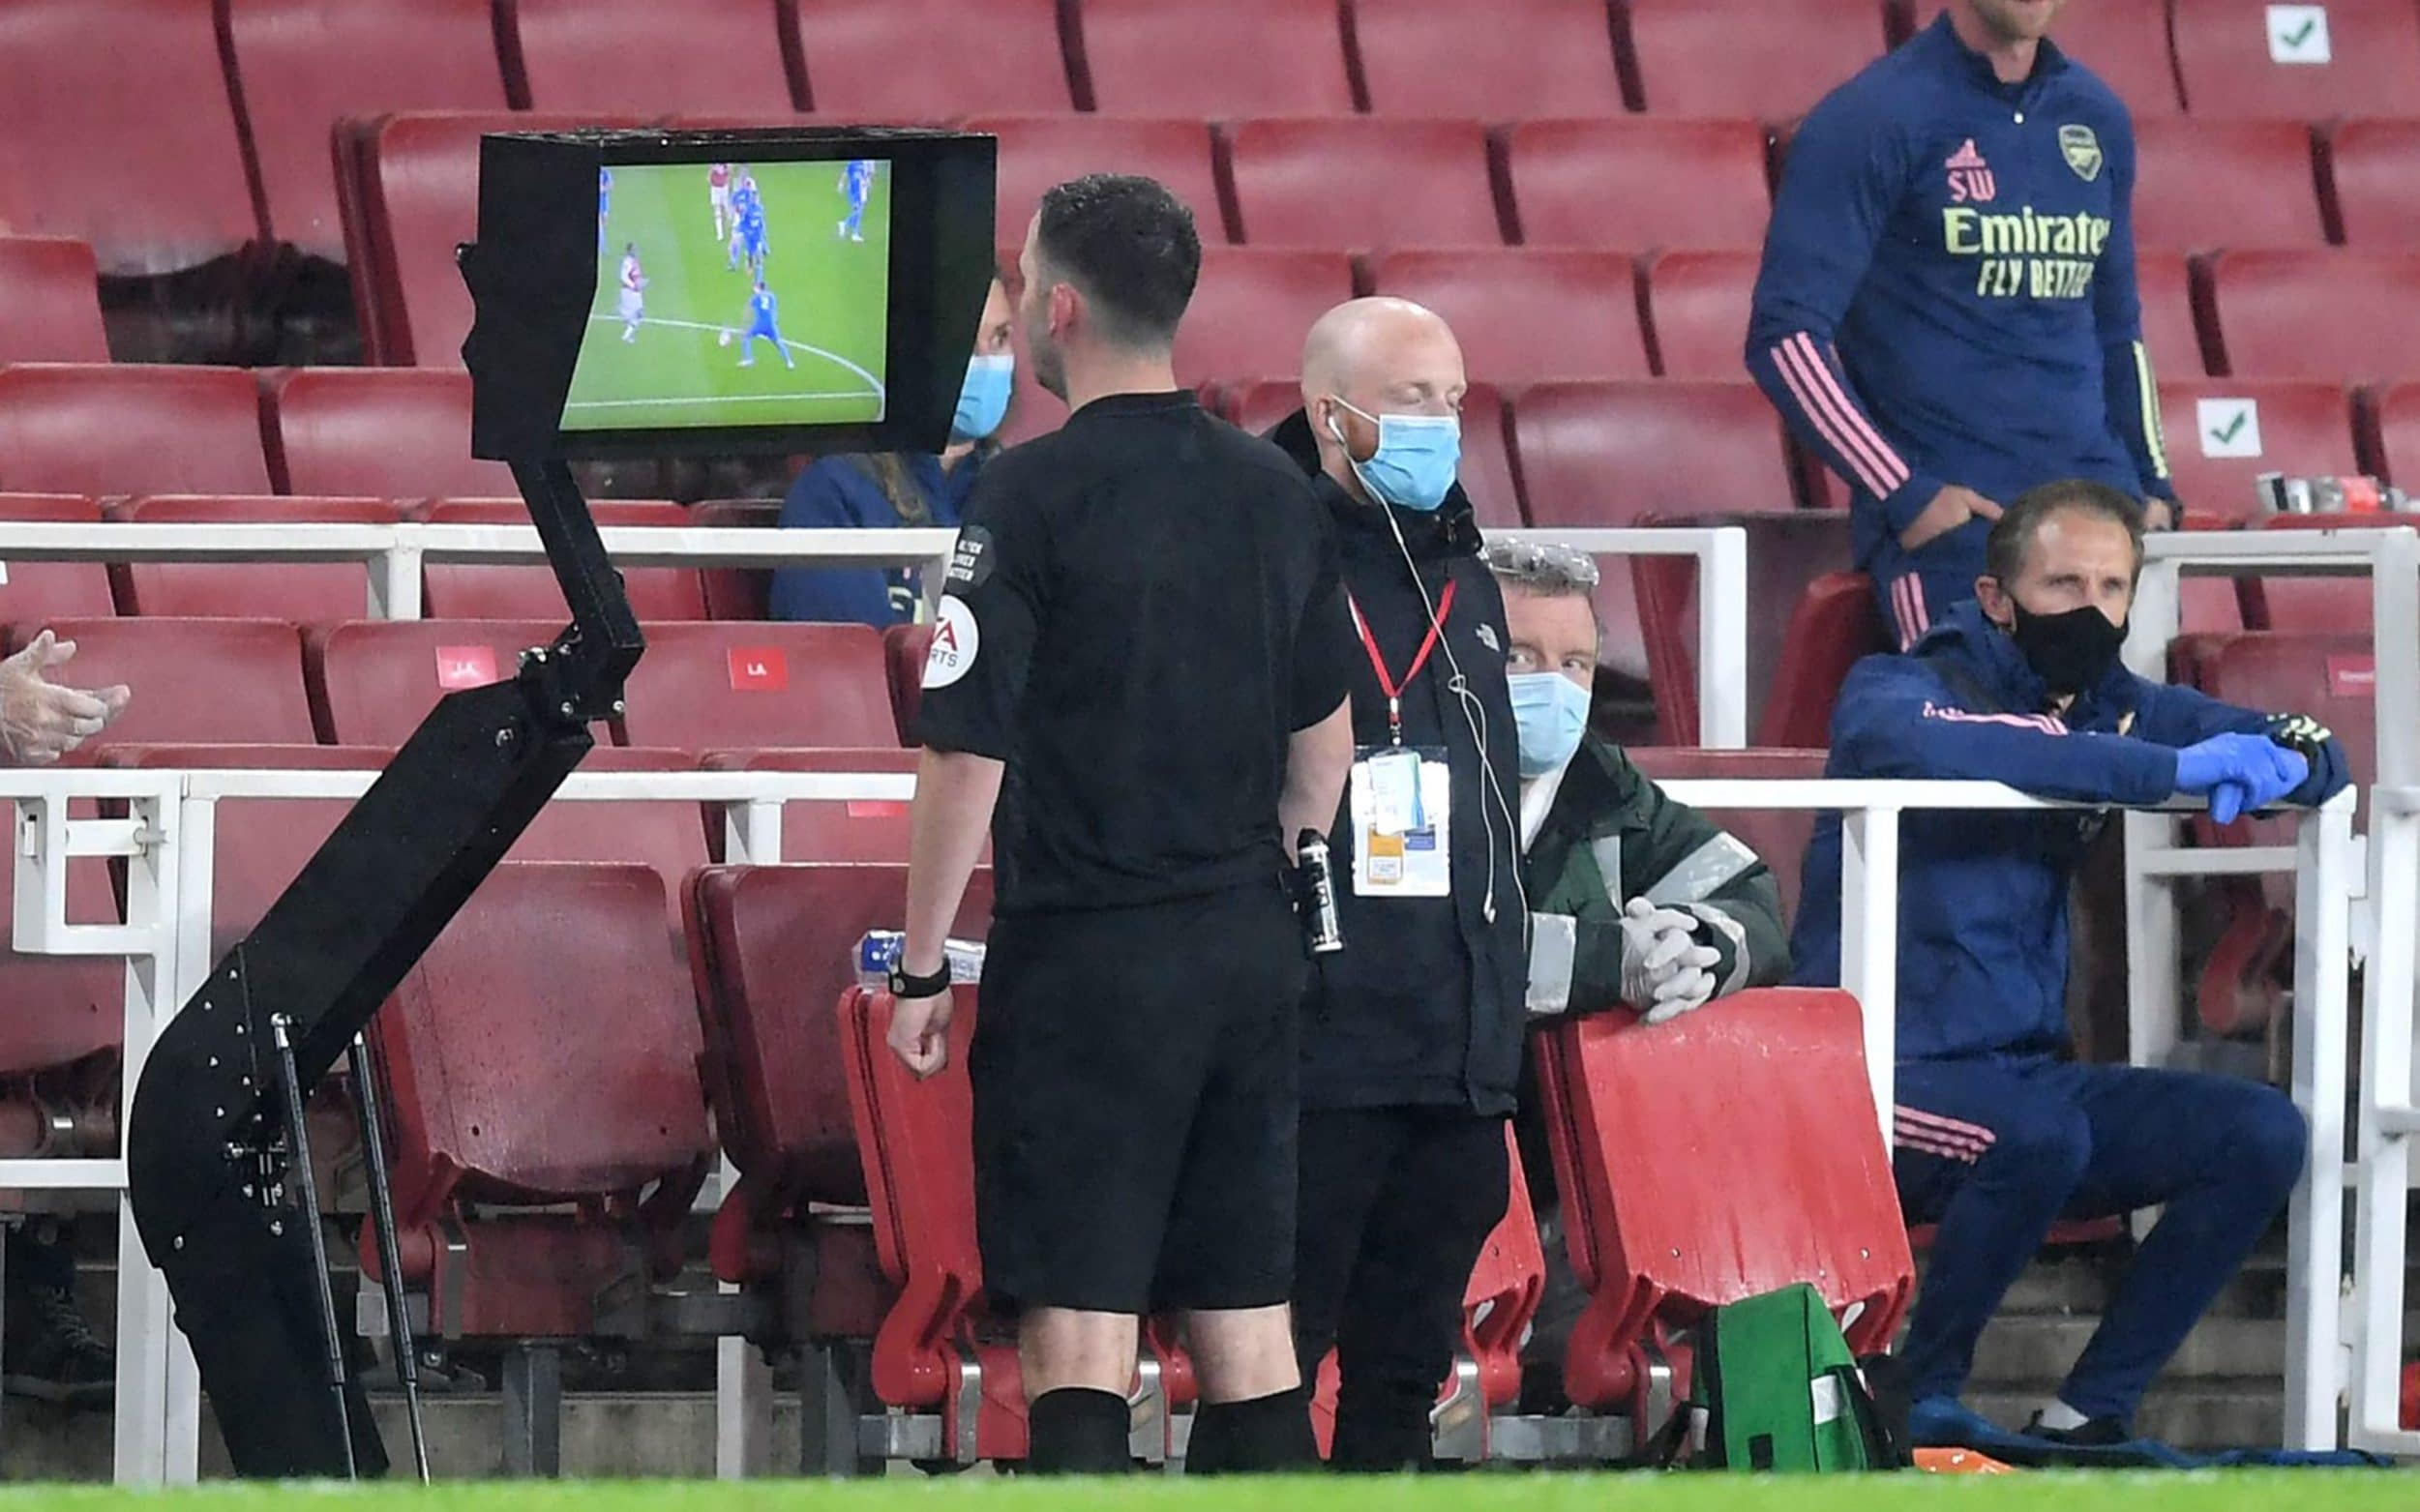 Premier League Clubs Voted To Use The Full FIFA VAR Protocol For The 2020/21 Season